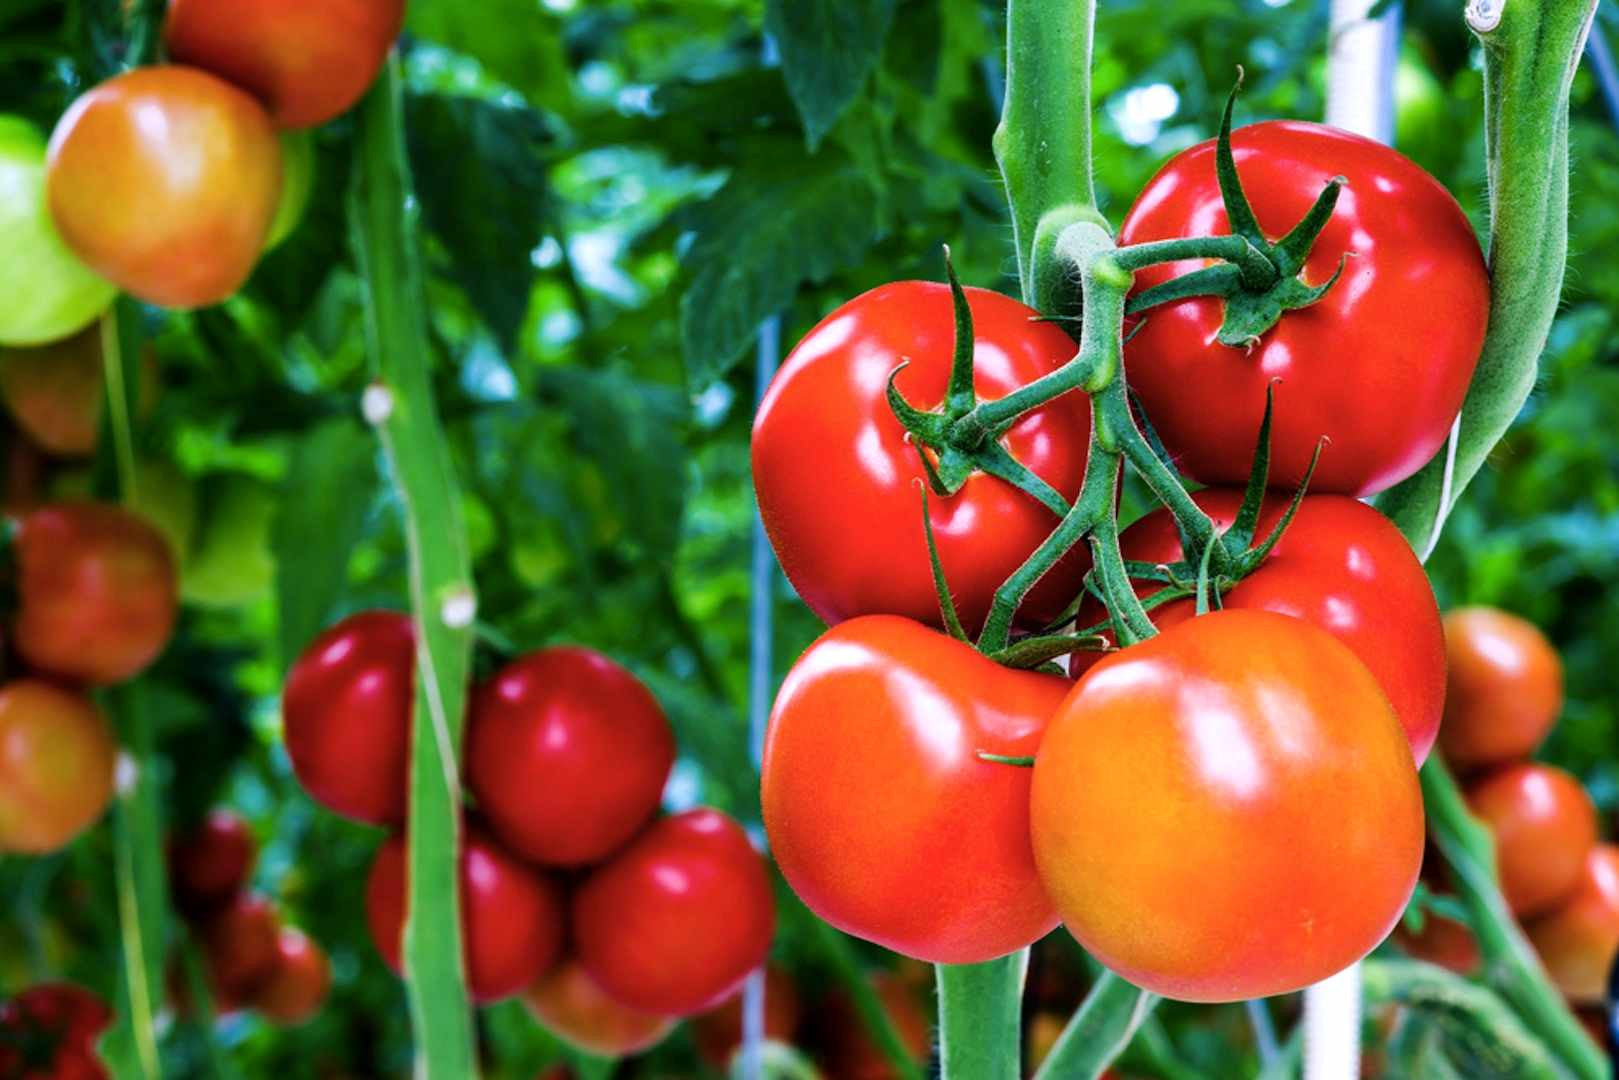 Nutrients for hydroponic tomatoes